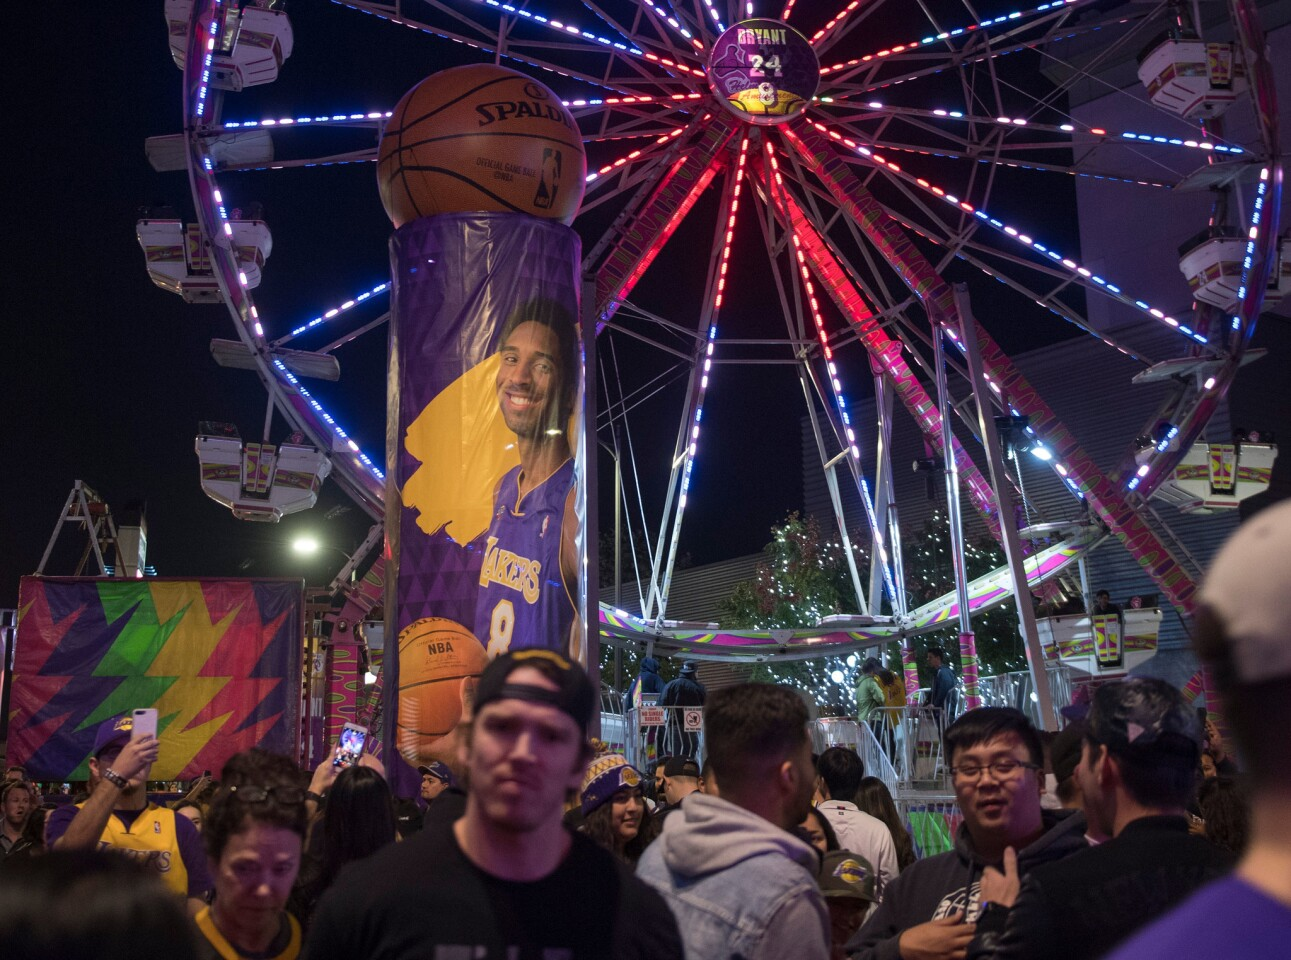 Dec 18, 2017; Los Angeles, CA, USA; Fans pack an amusement area set up in front of Staples Center to commemorate former Laker great Kobe Bryant having his uniform numbers retired during halftime of the Lakers game against the Golden State Warriors. Mandatory Credit: Robert Hanashiro-USA TODAY Sports ** Usable by SD ONLY **